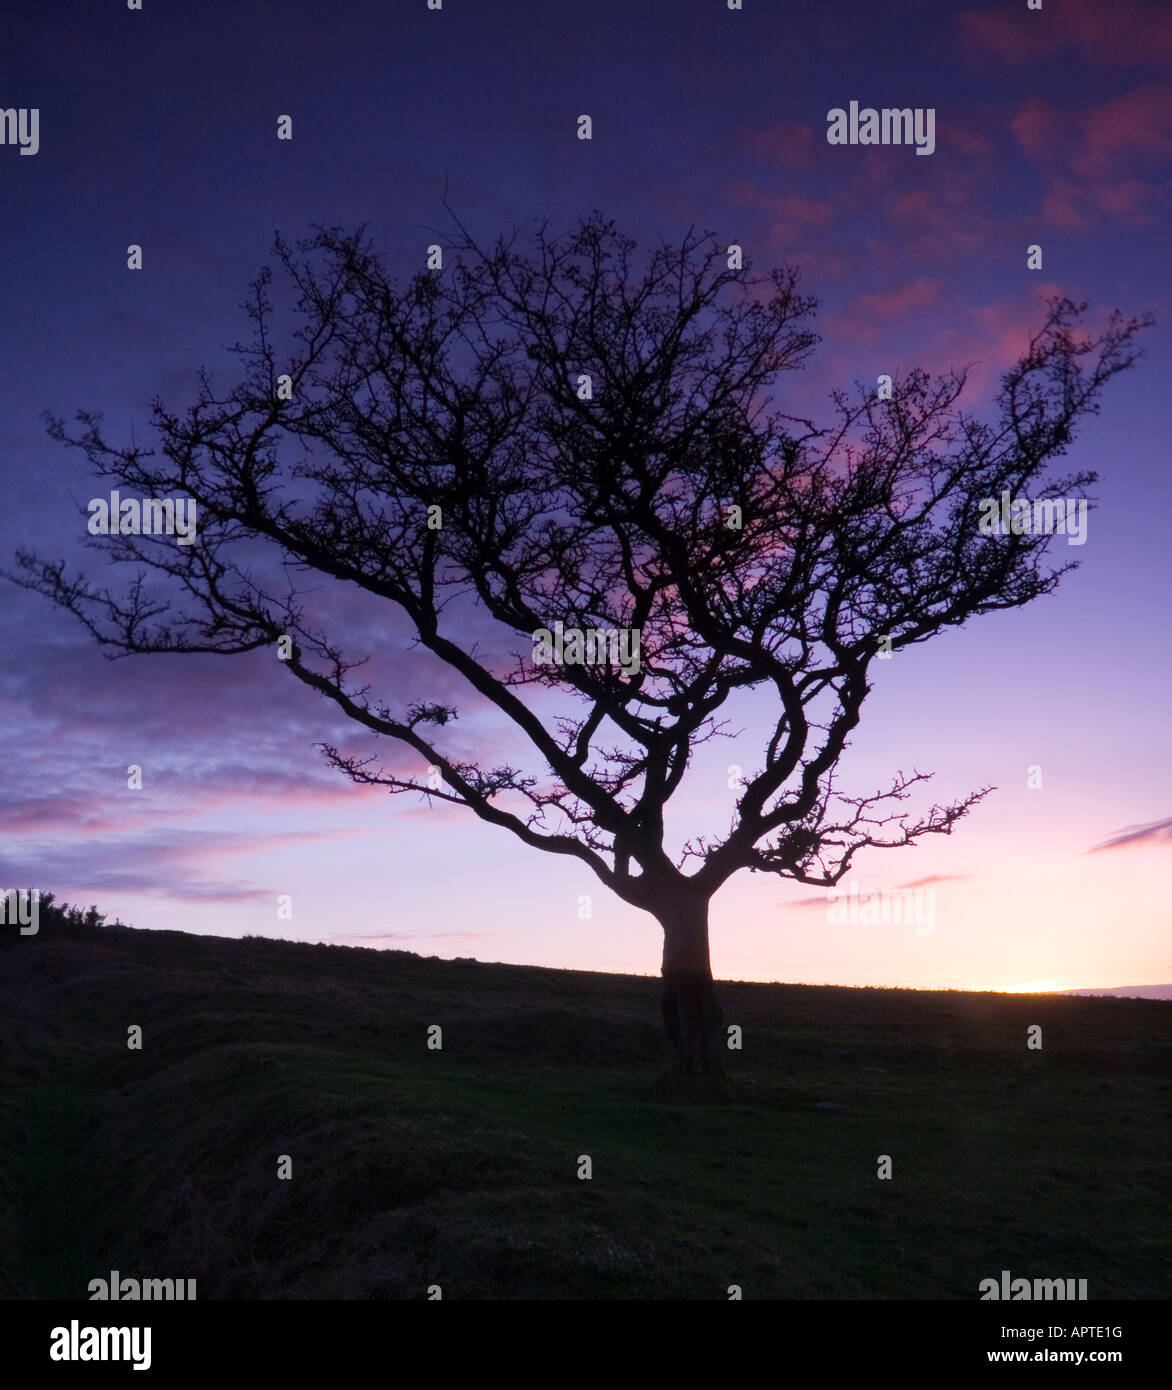 An old hawthorn tree silhouetted against the arly evening sky - Stock Image